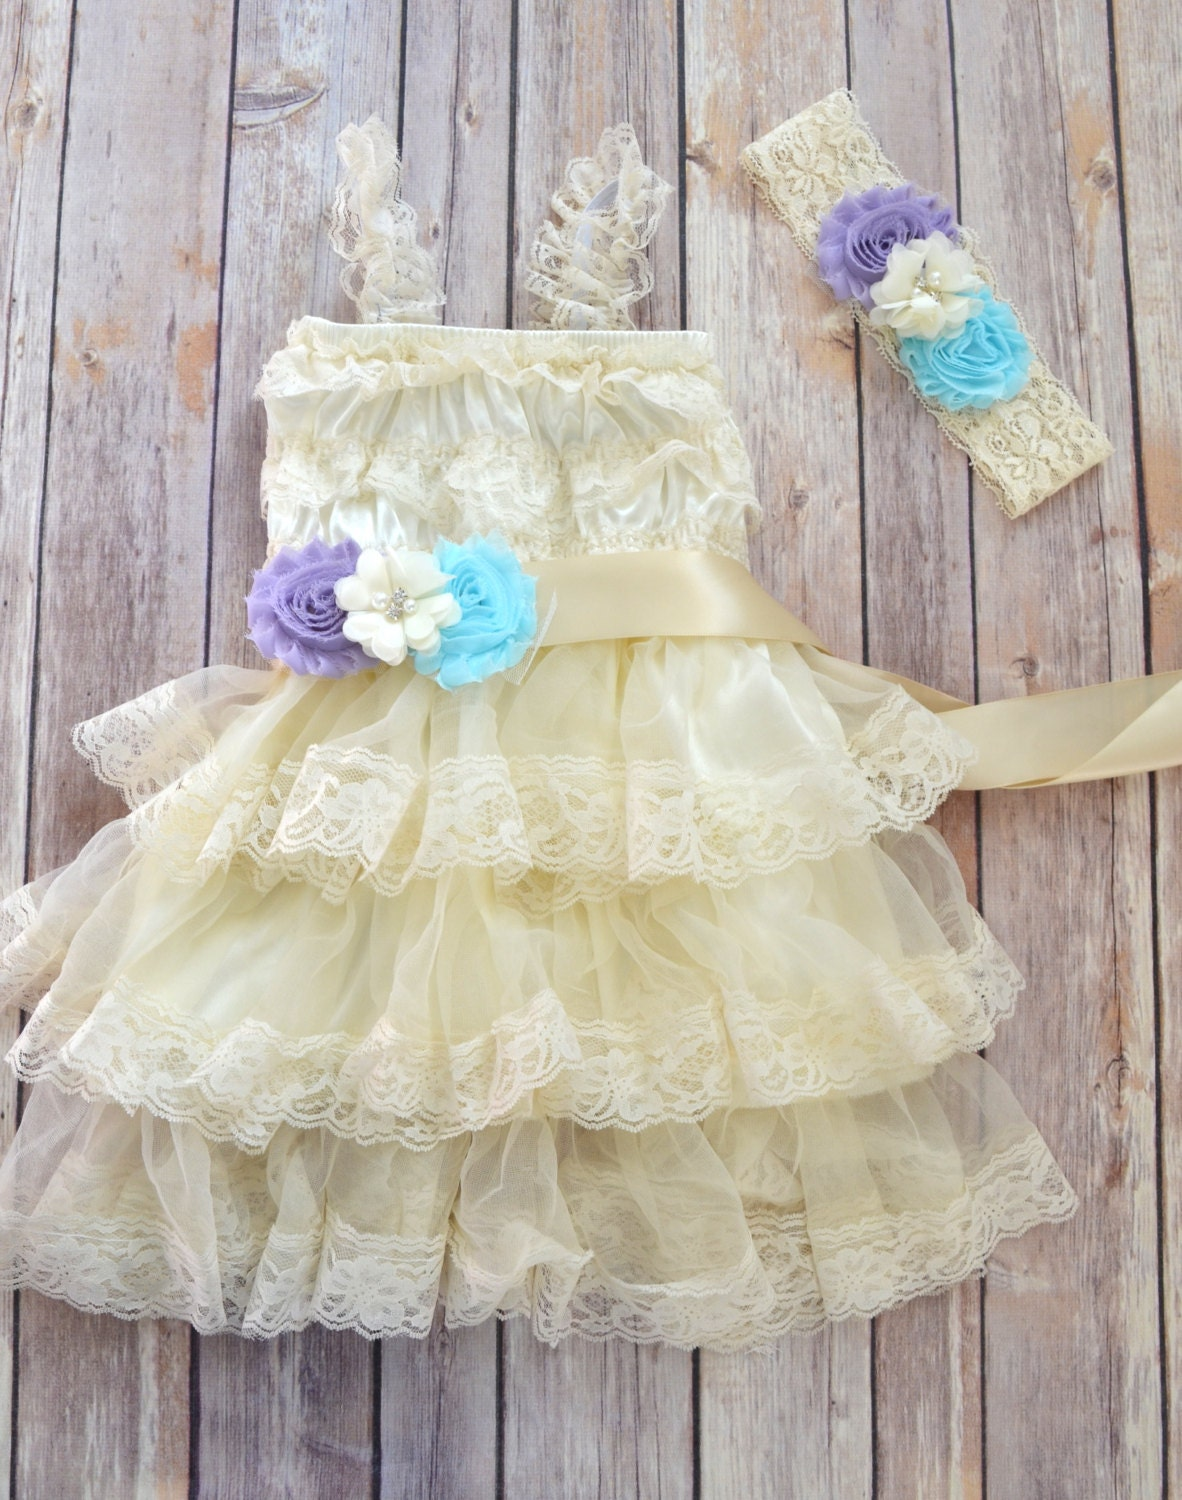 Lilac Aqua Ivory Lace Flower Girl Dress by MaidenLaneBoutique